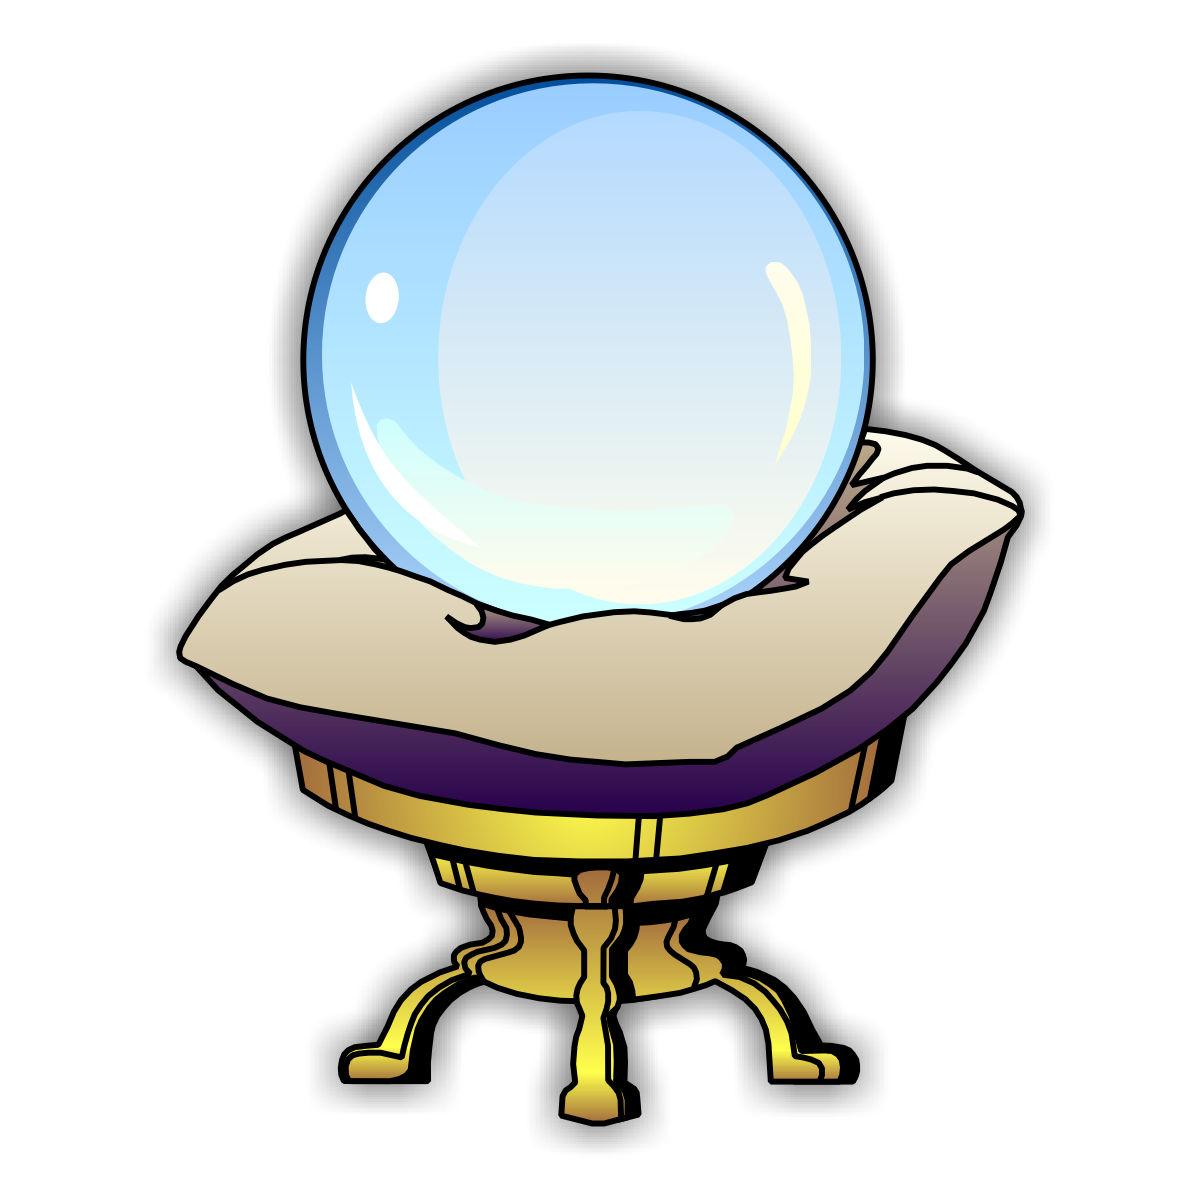 Free Crystal Ball Clipart, Download Free Clip Art, Free Clip.